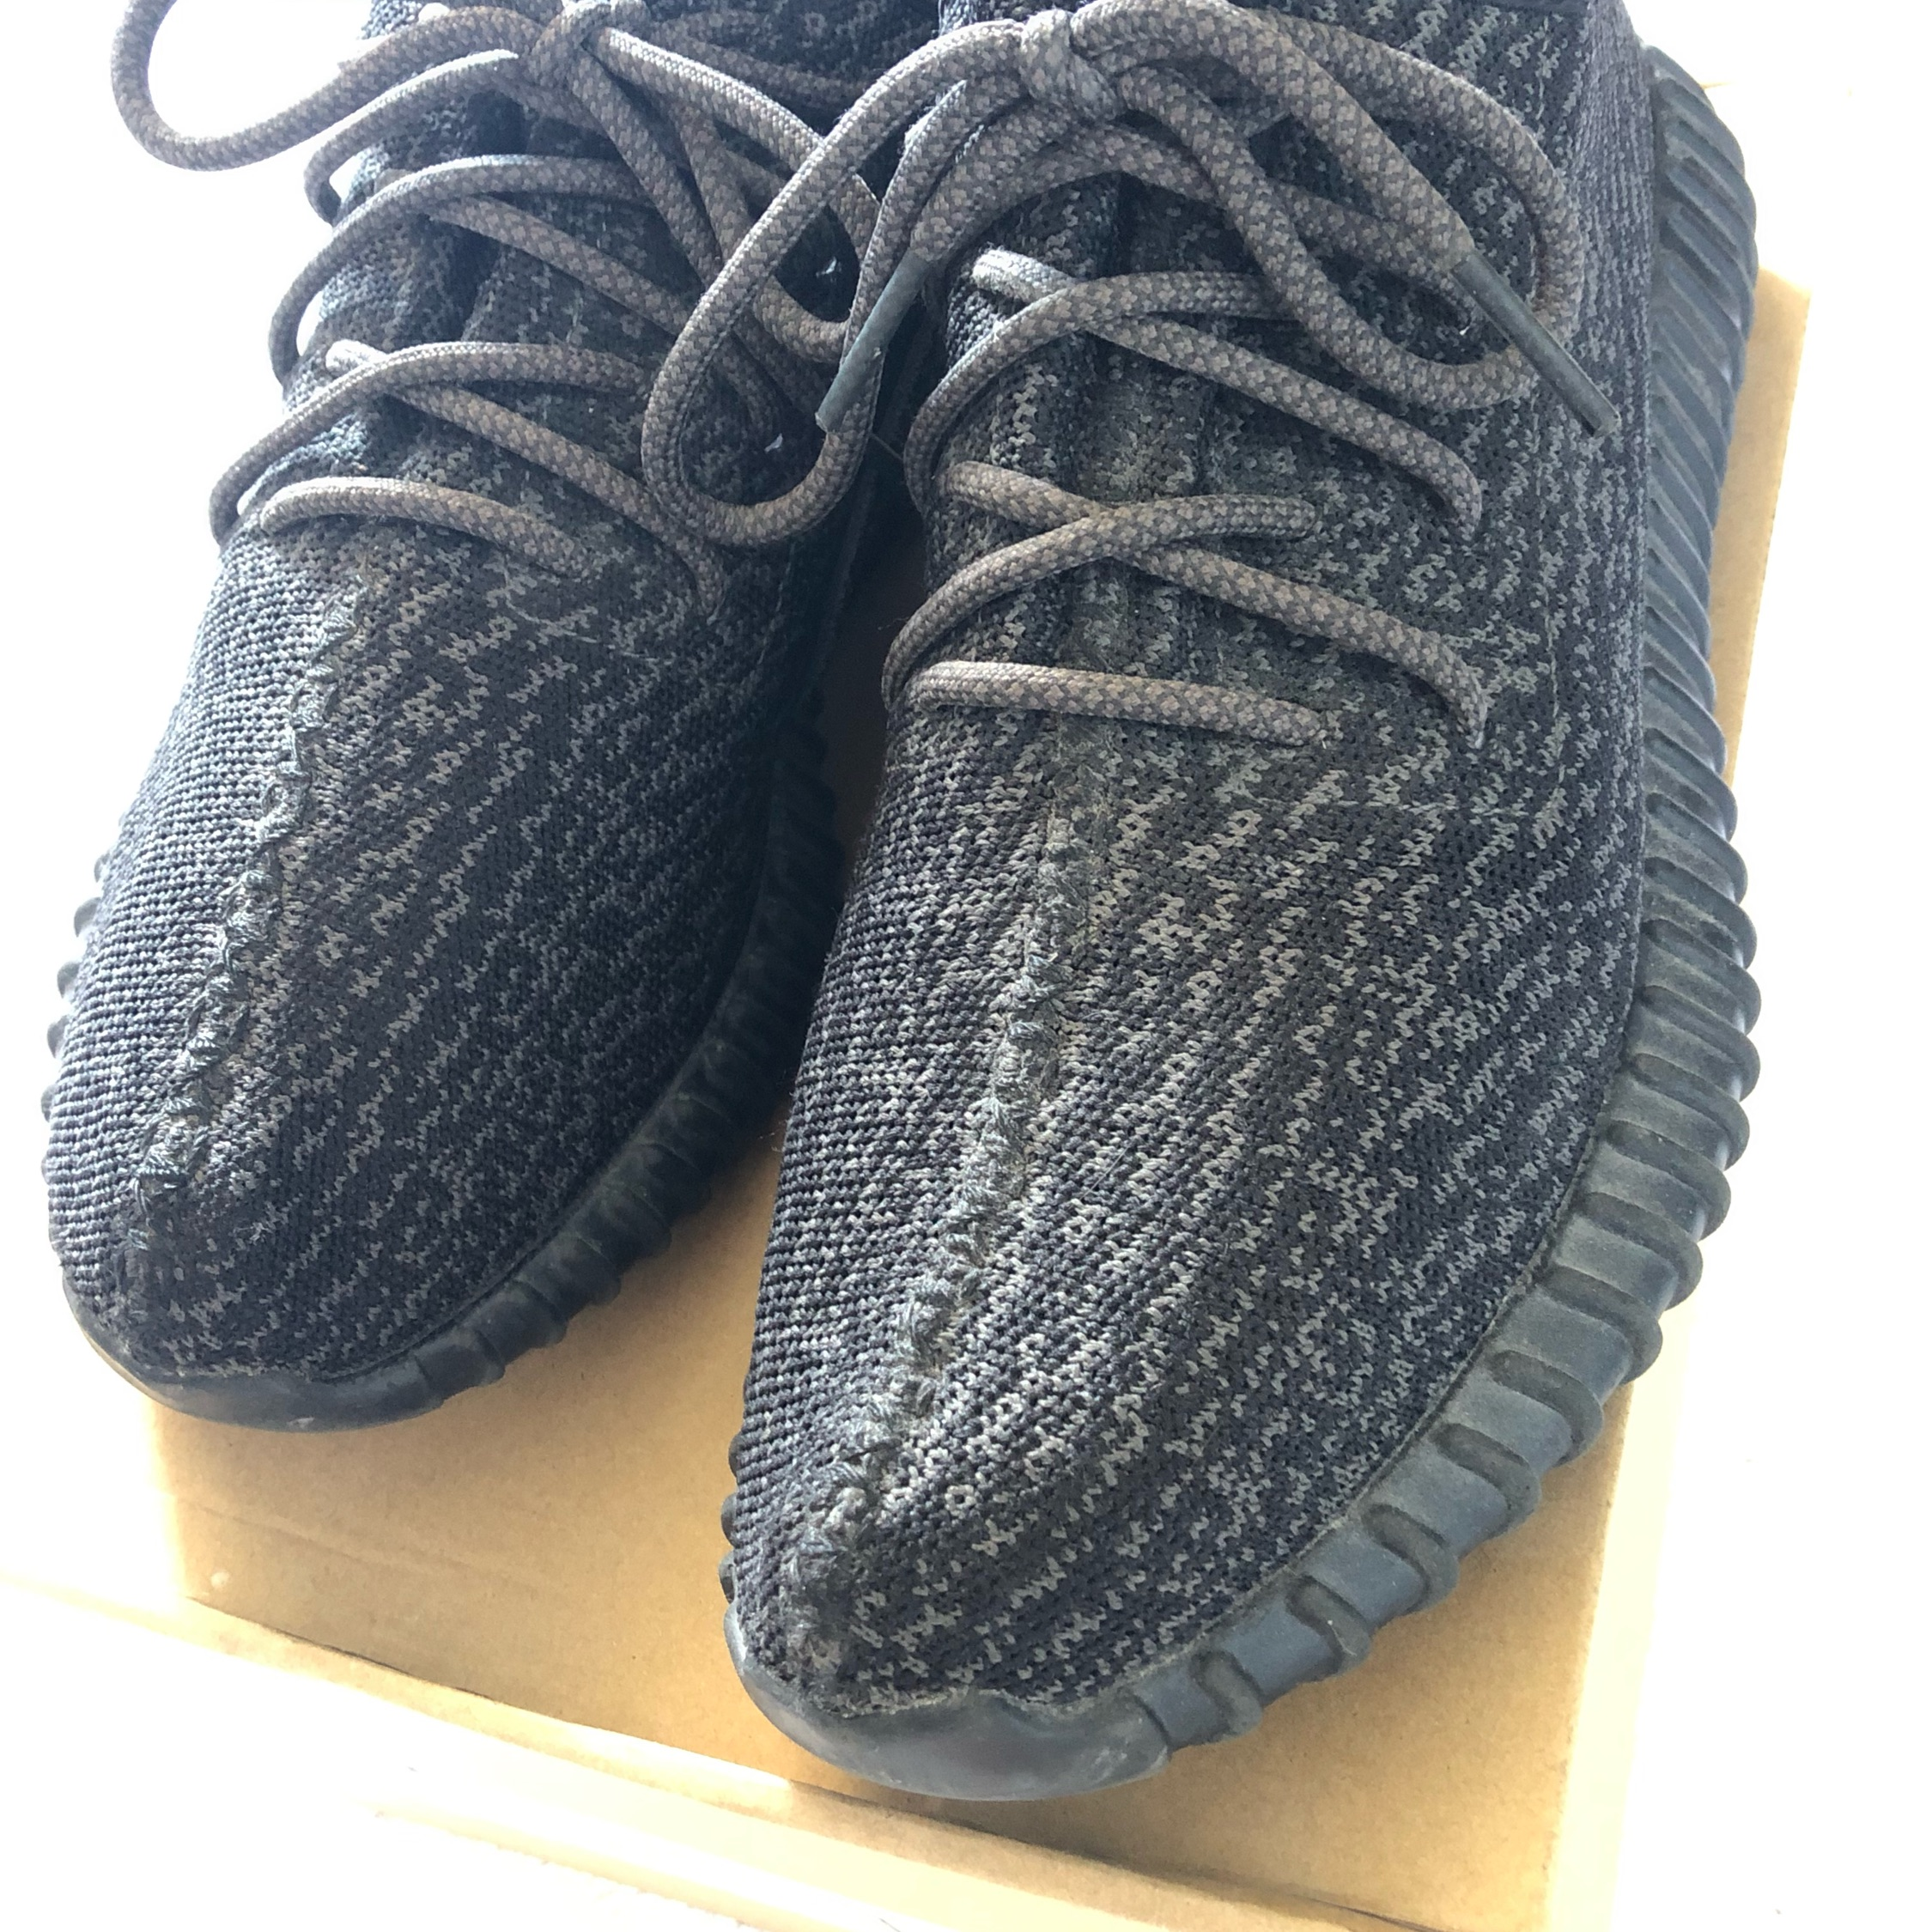 low priced 7e739 da646 Yeezy Boost Pirate Black V1